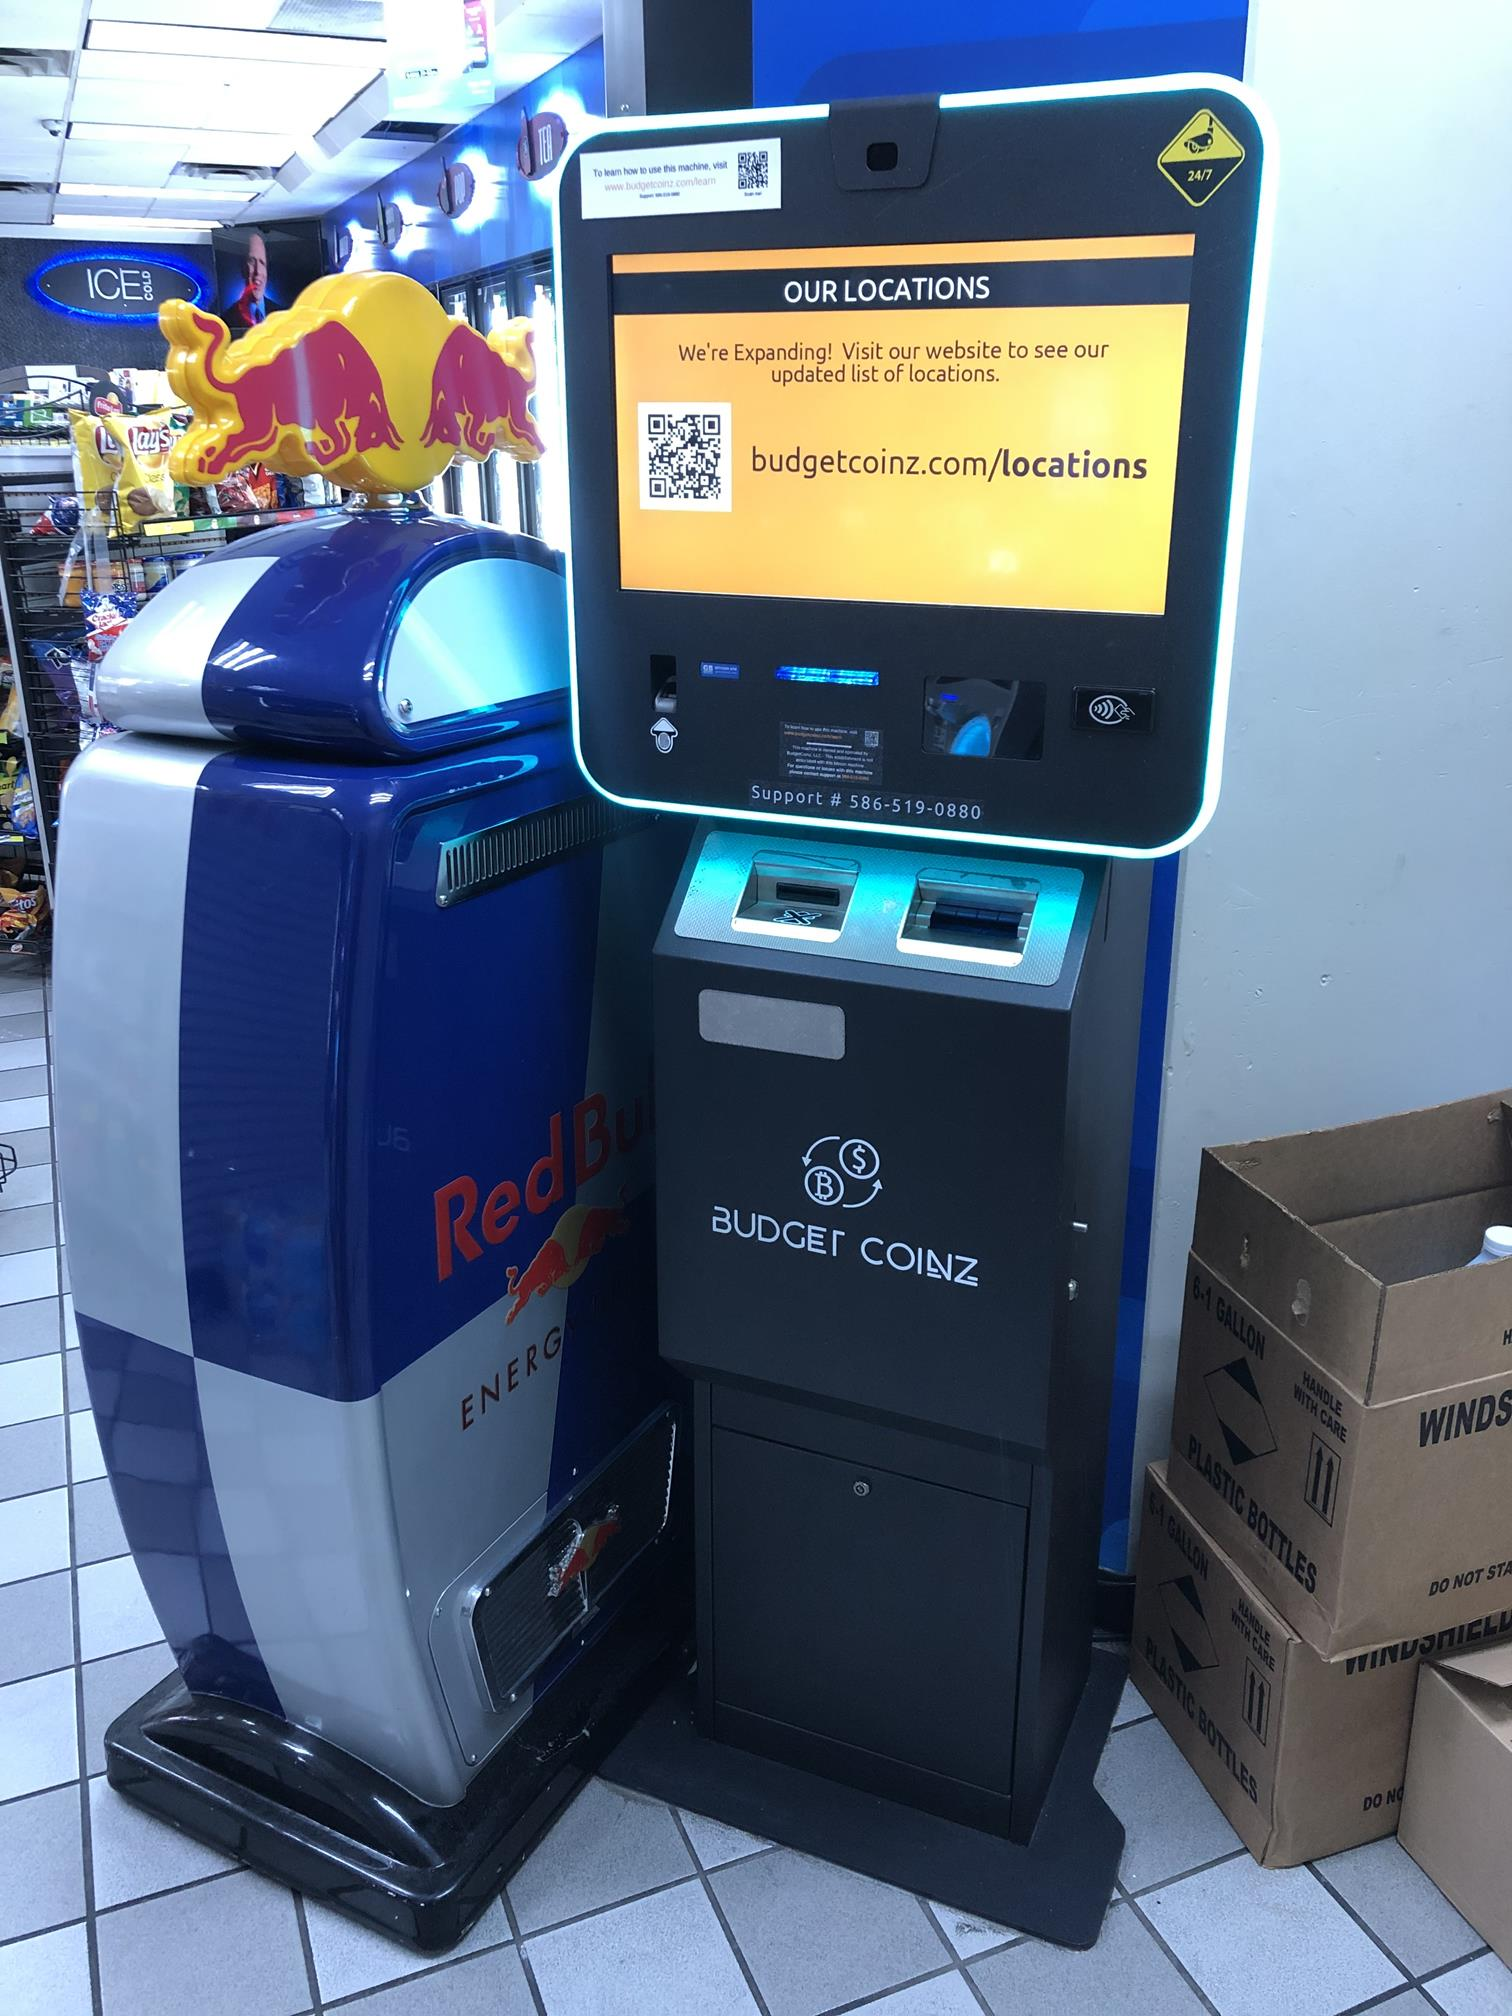 How to Buy Bitcoin with Cash Using a Bitcoin ATM - Real Cryptocurrency Hub